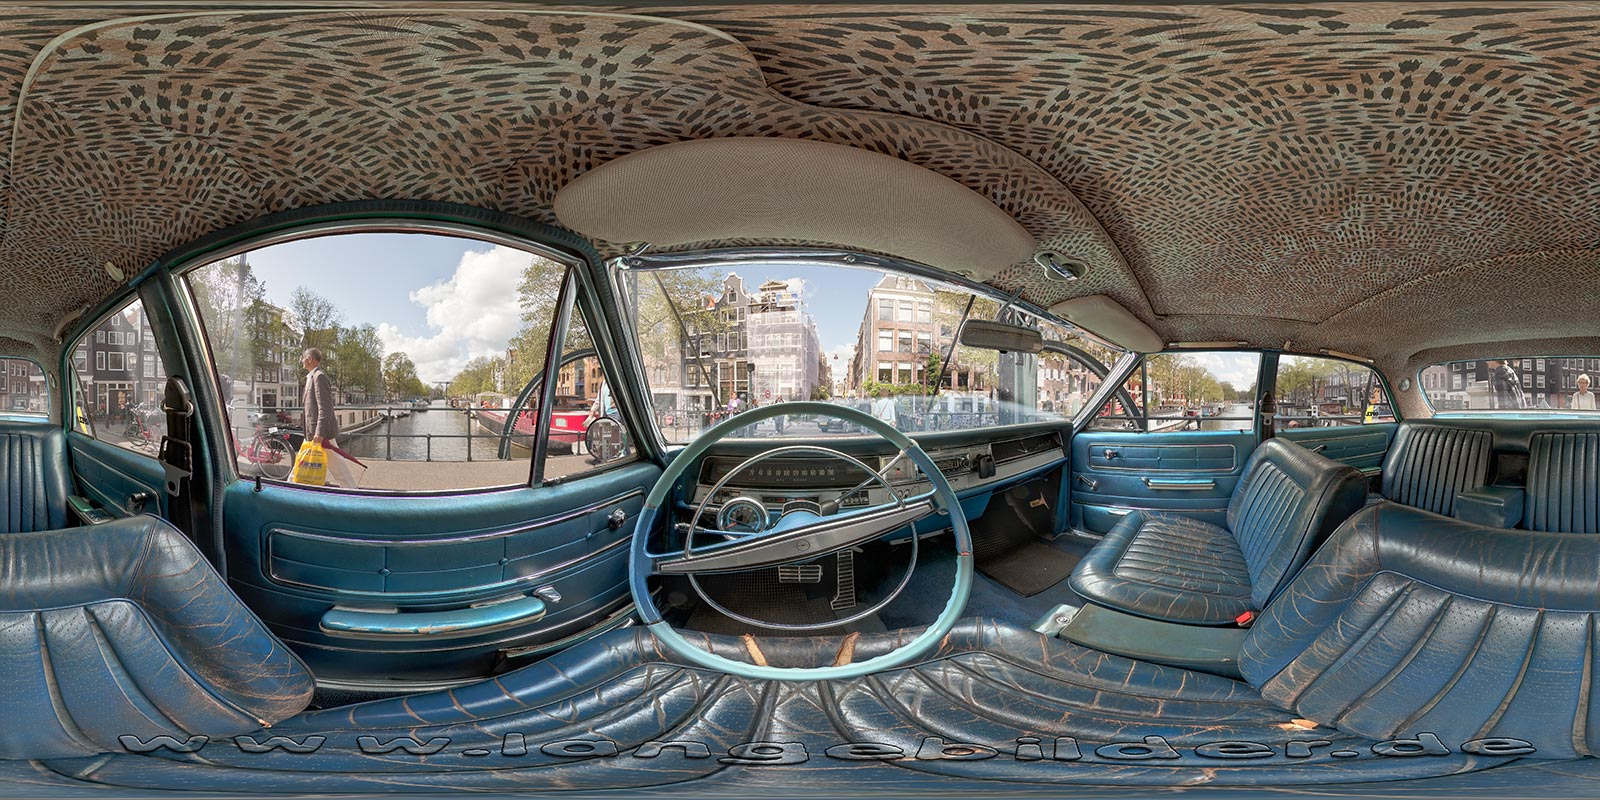 Opel Admiral in Amsterdam